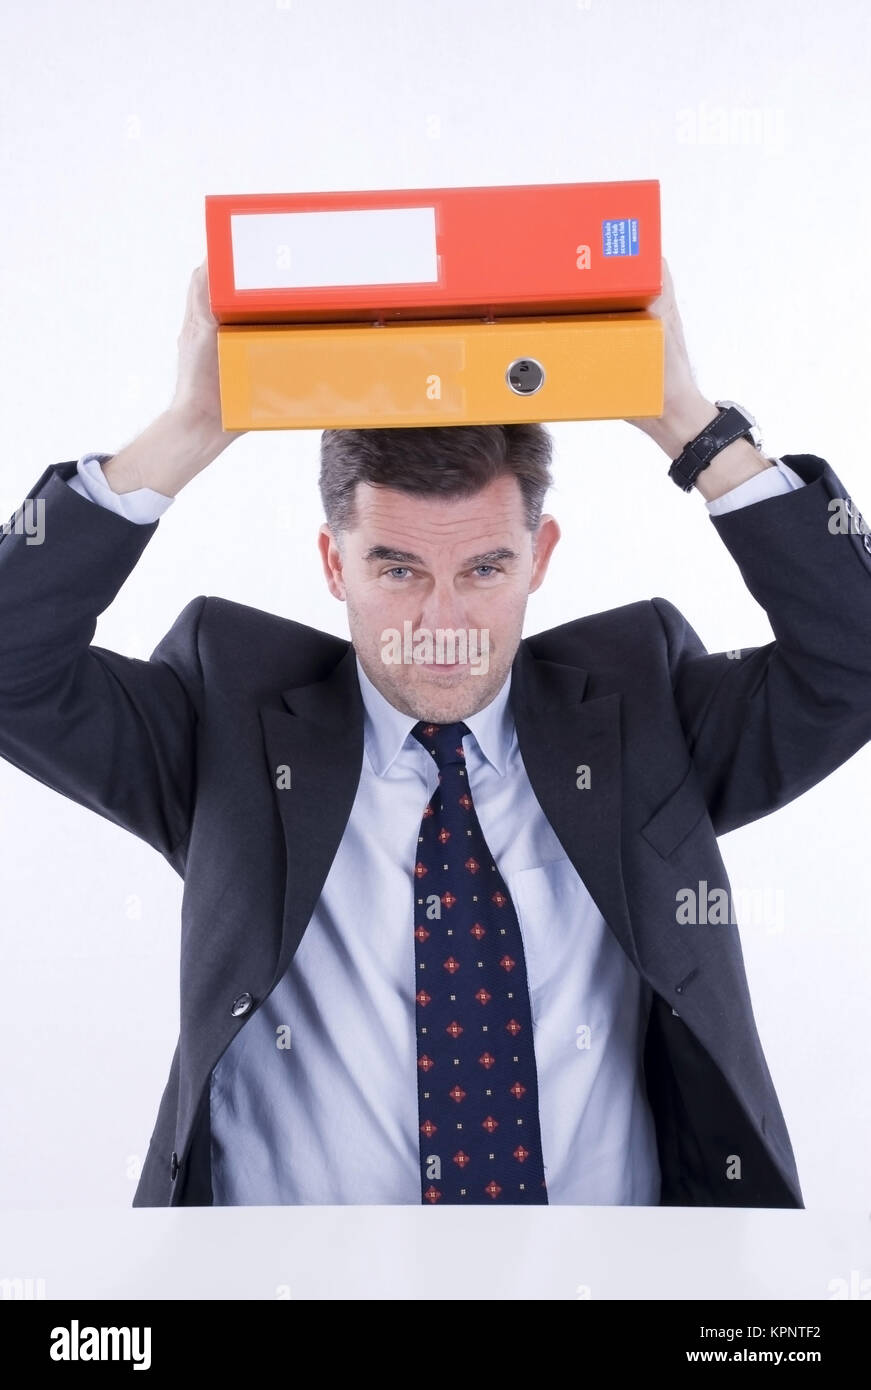 Model release , Geschaeftsmann mit Akten am Kopf - business man with files on head - Stock Image